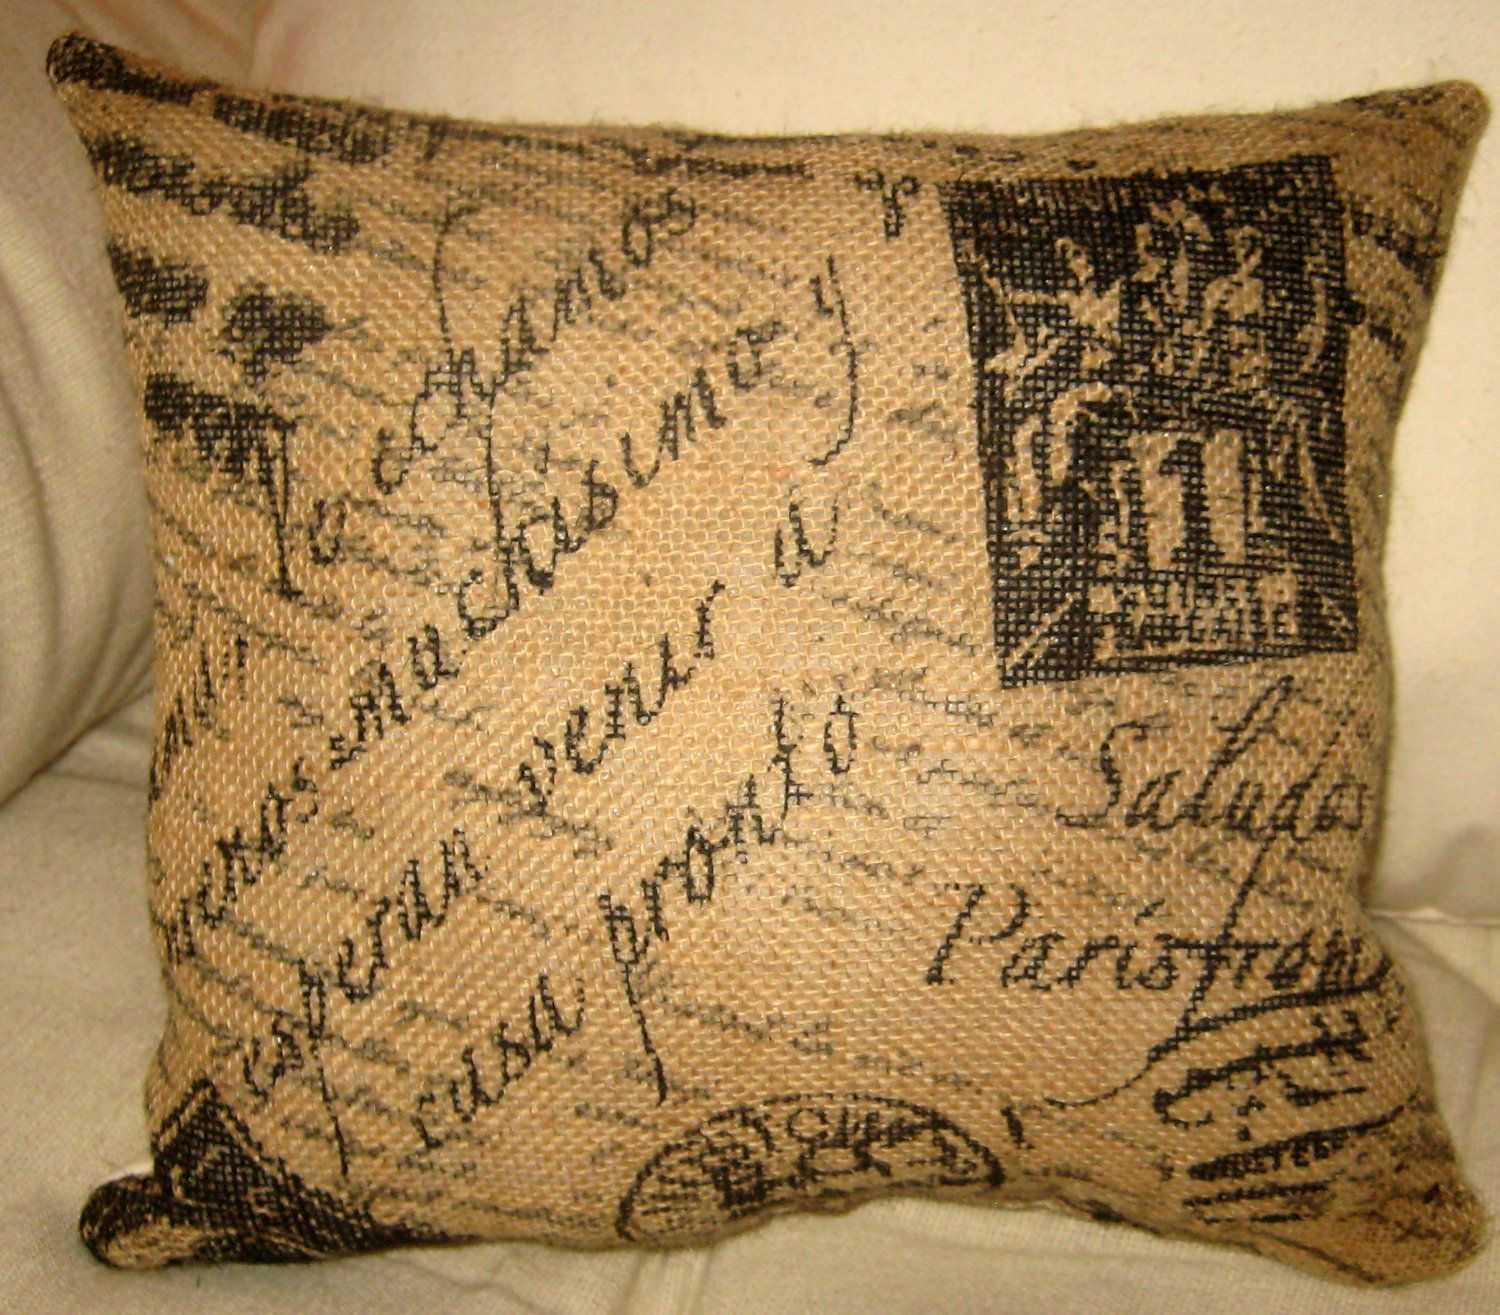 Throw Pillows With French Script : French Script Burlap Pillow, French Country Shabby Chic Neutral Cushion, Paris Inspired Home ...